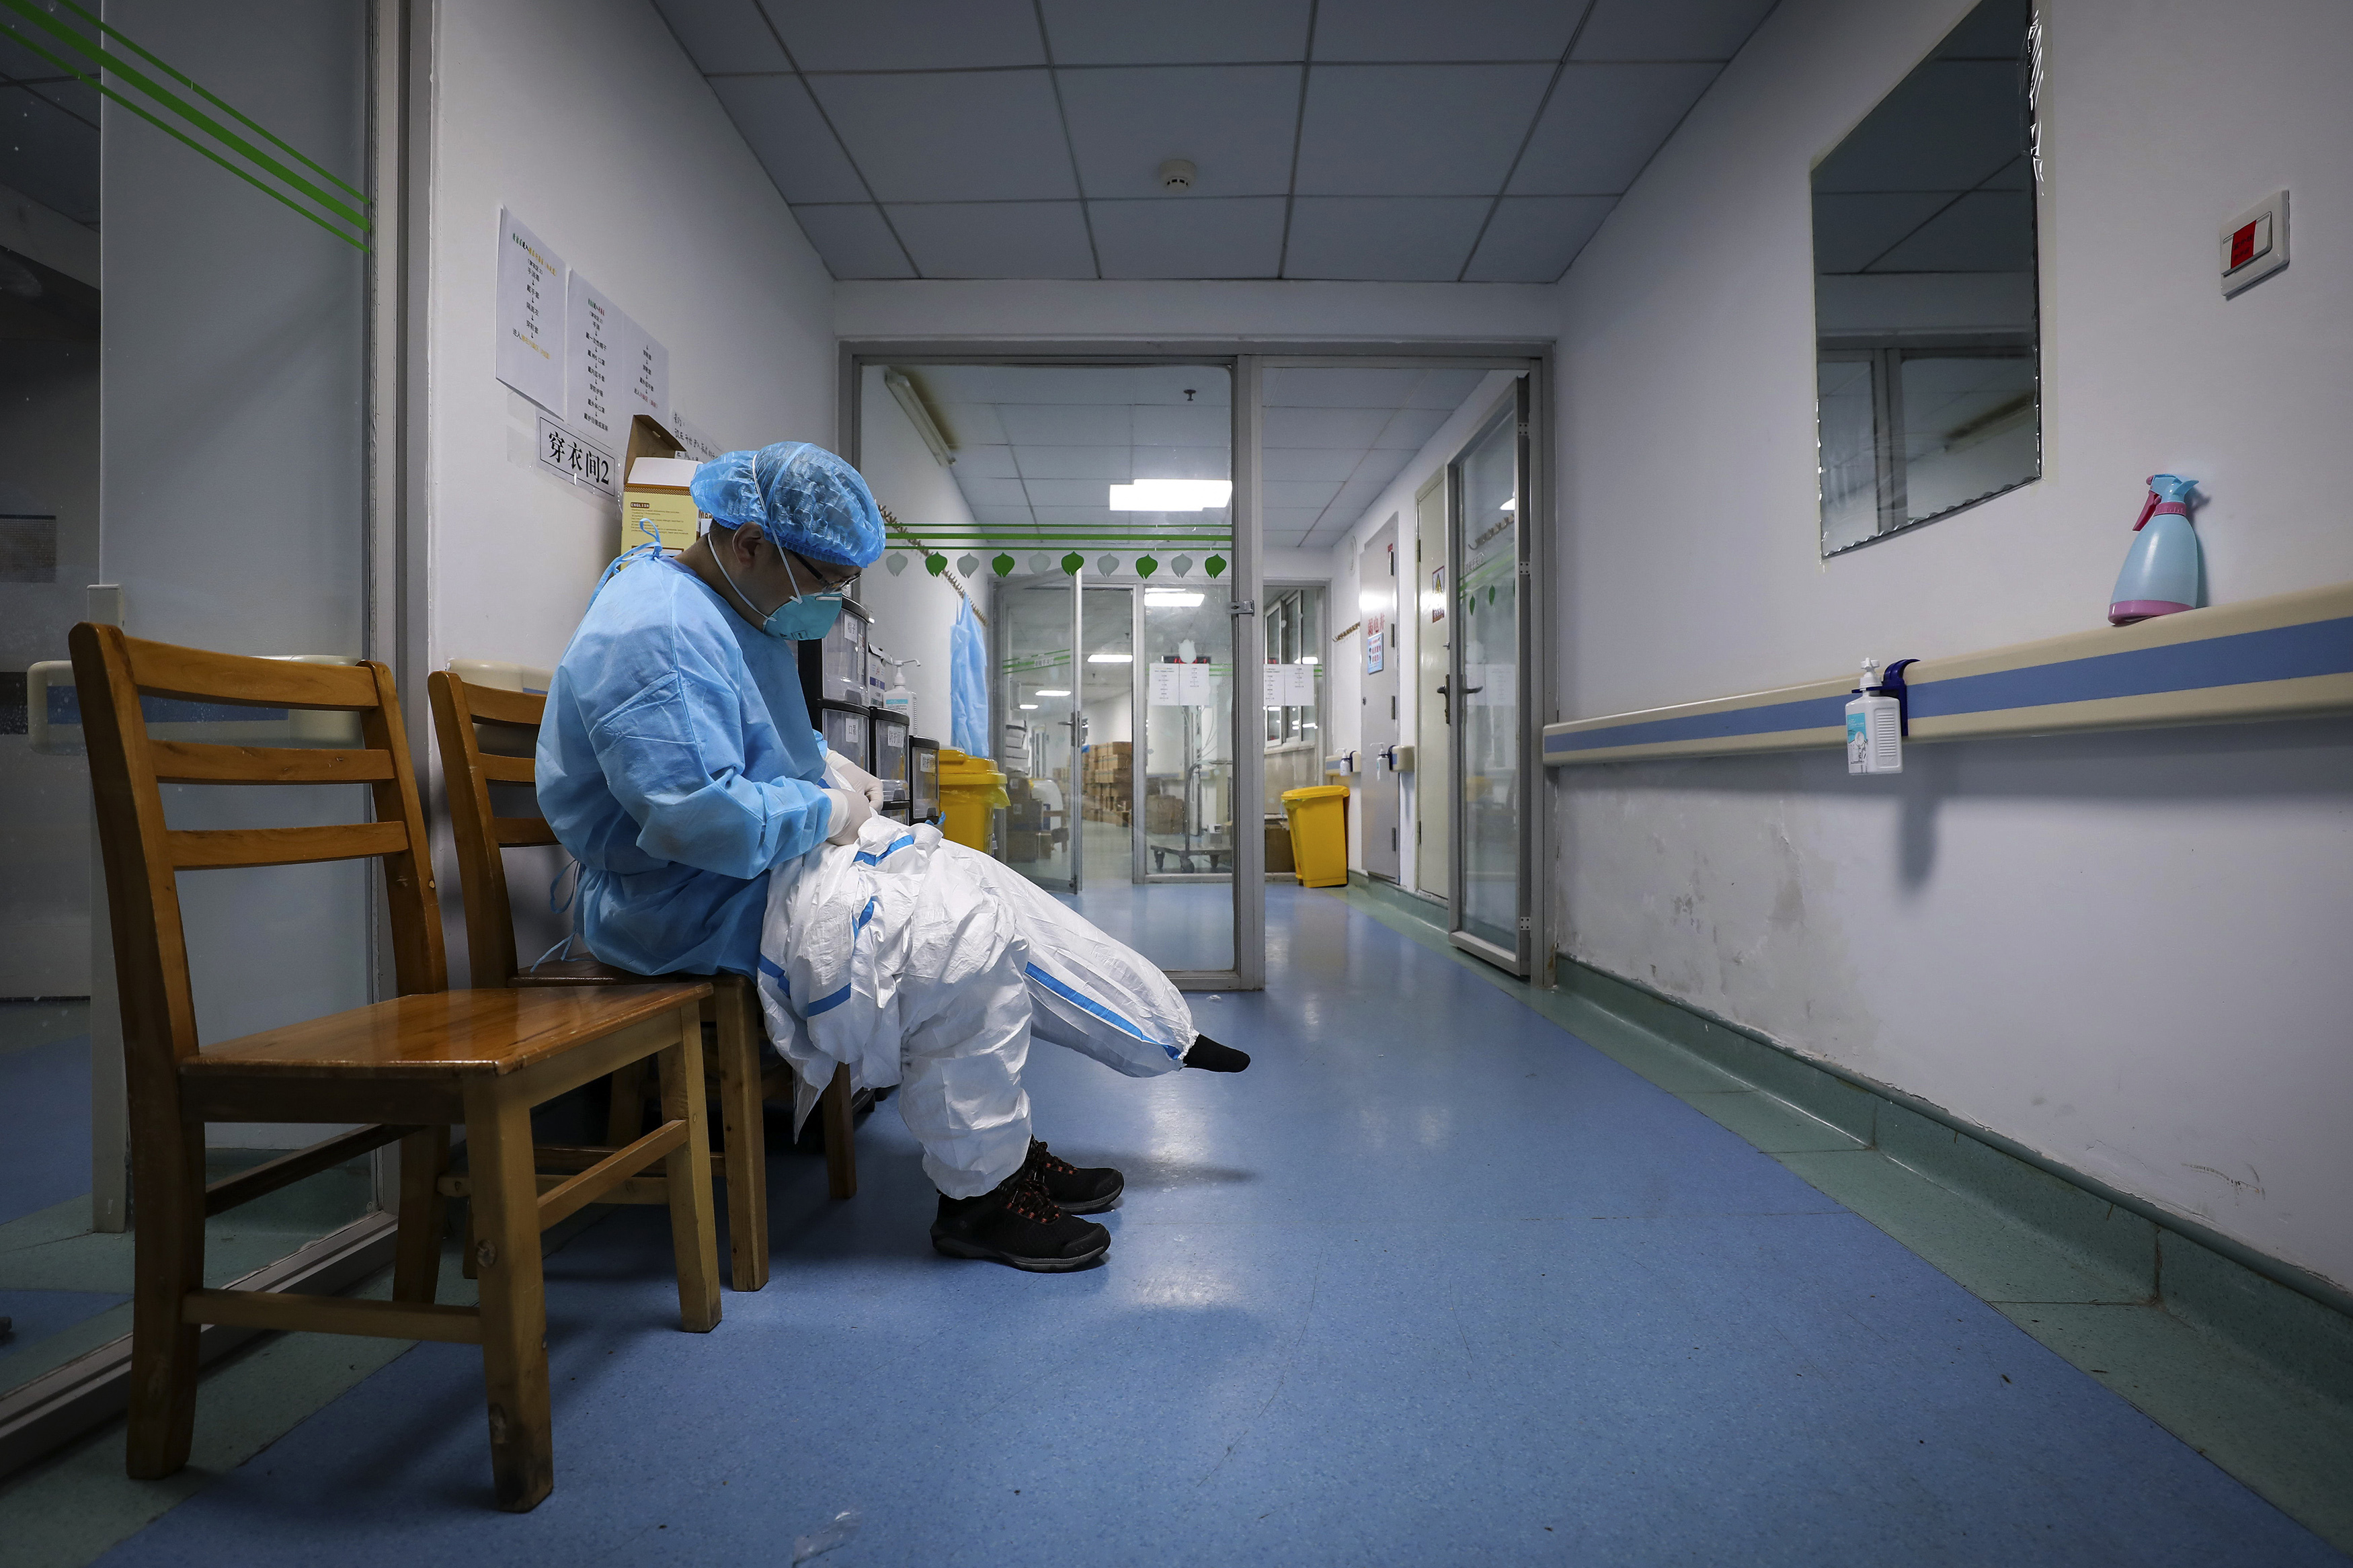 A doctor puts on a protective suit as he prepares to check on the patients at Jinyintan Hospital designated for coronavirus infected patients, in Wuhan